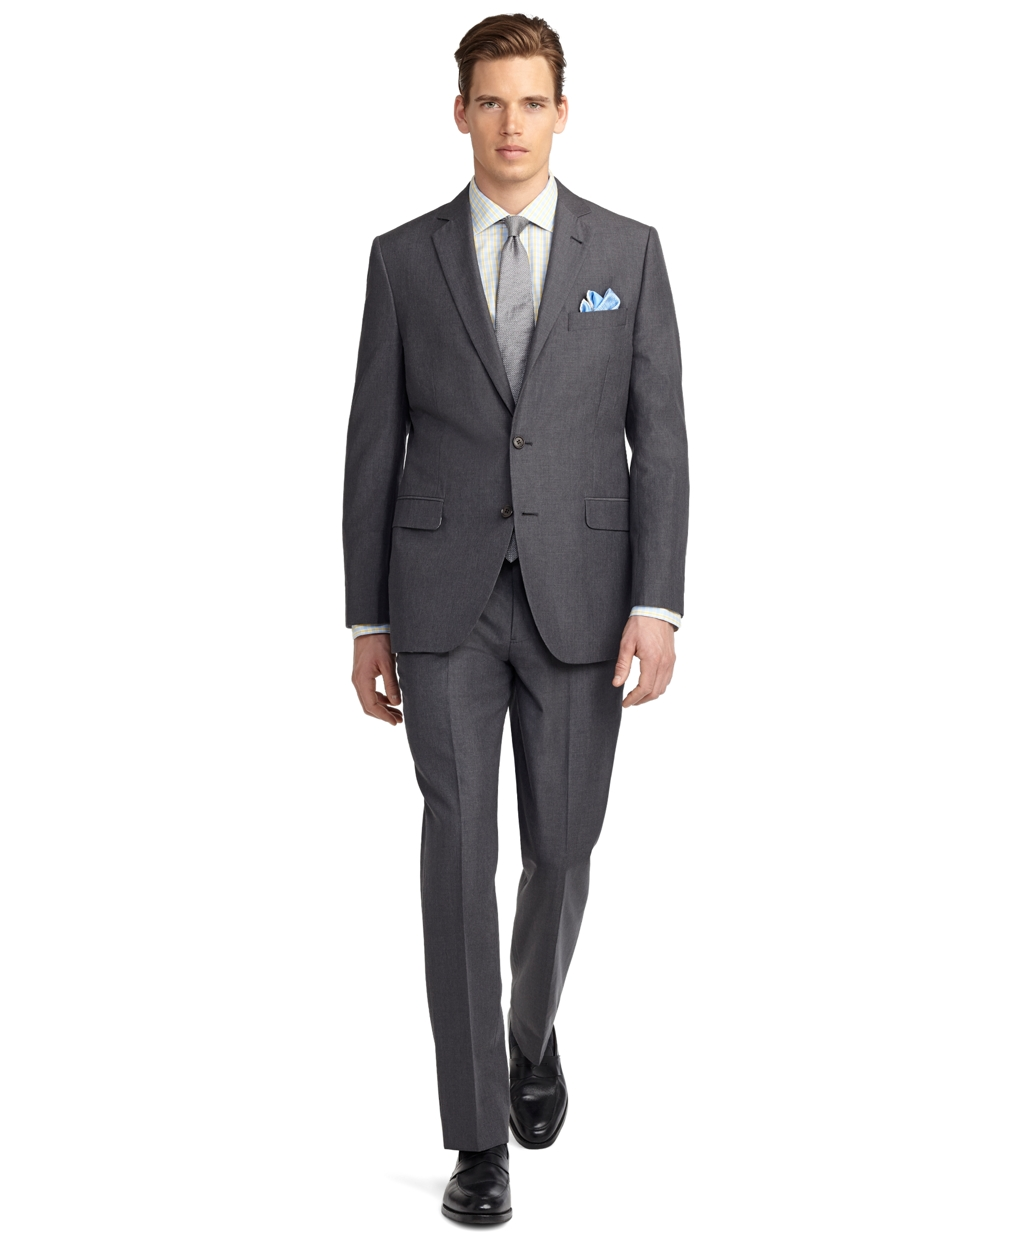 Brooks brothers fitzgerald fit melange suit in gray for for Brooks brothers dress shirt fit guide